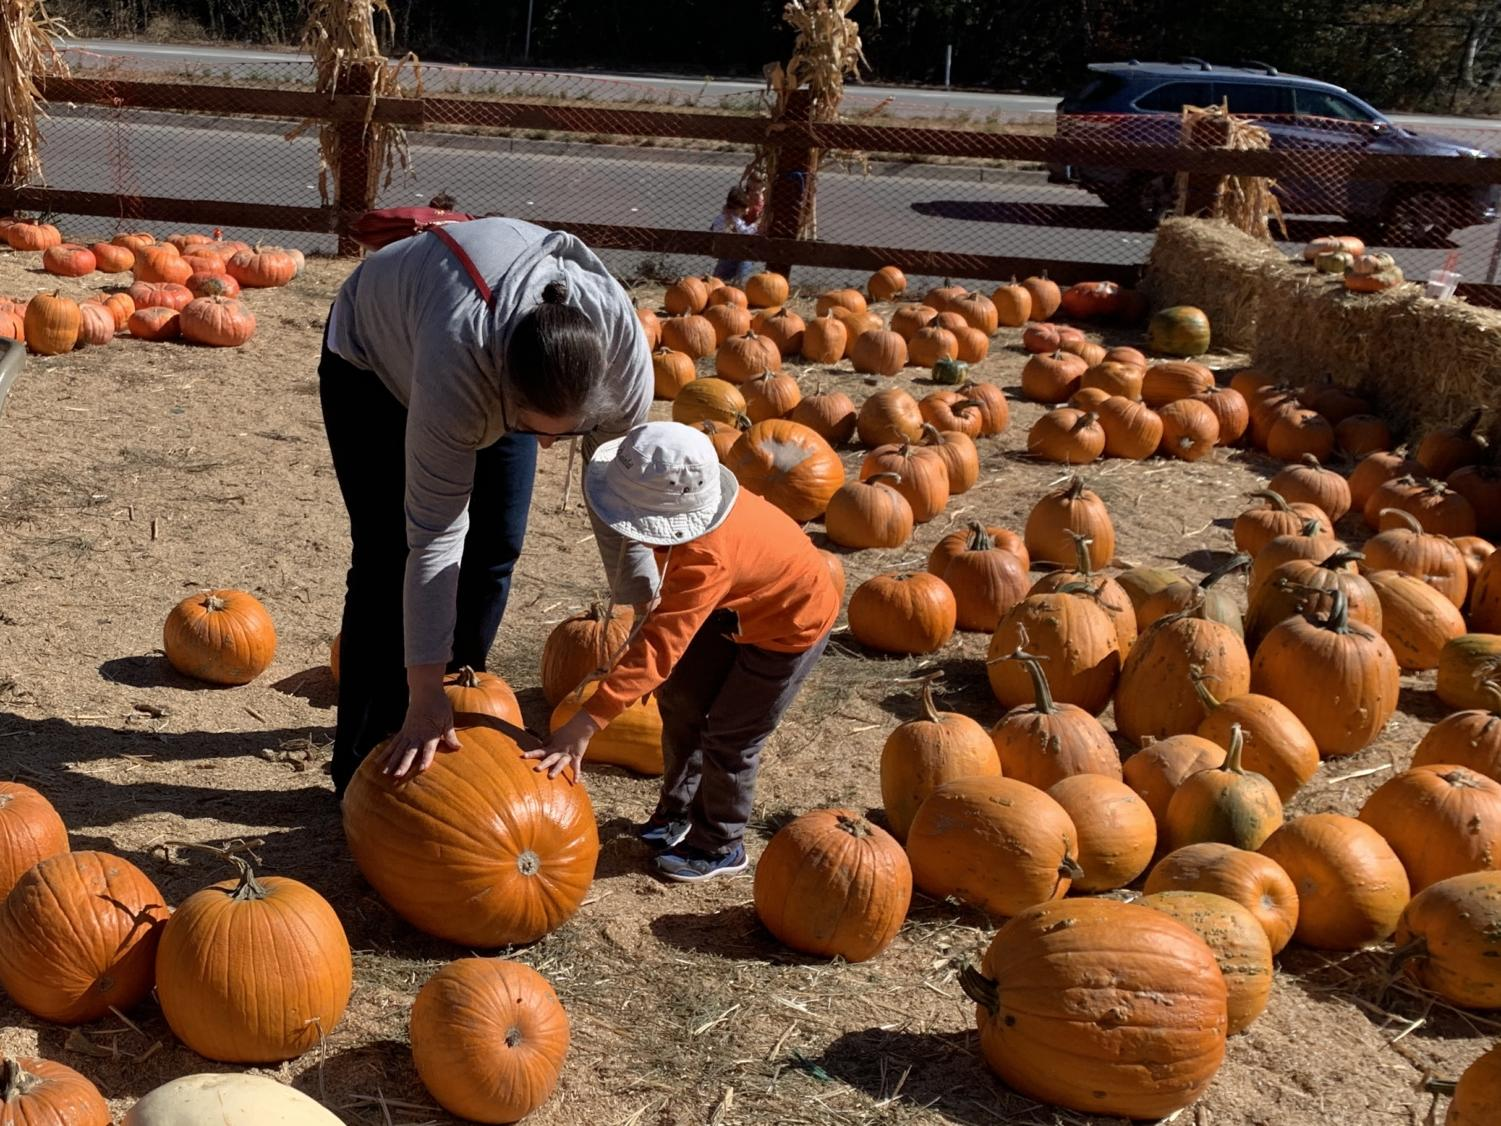 Mother and her son pick pumpkins together from the field.